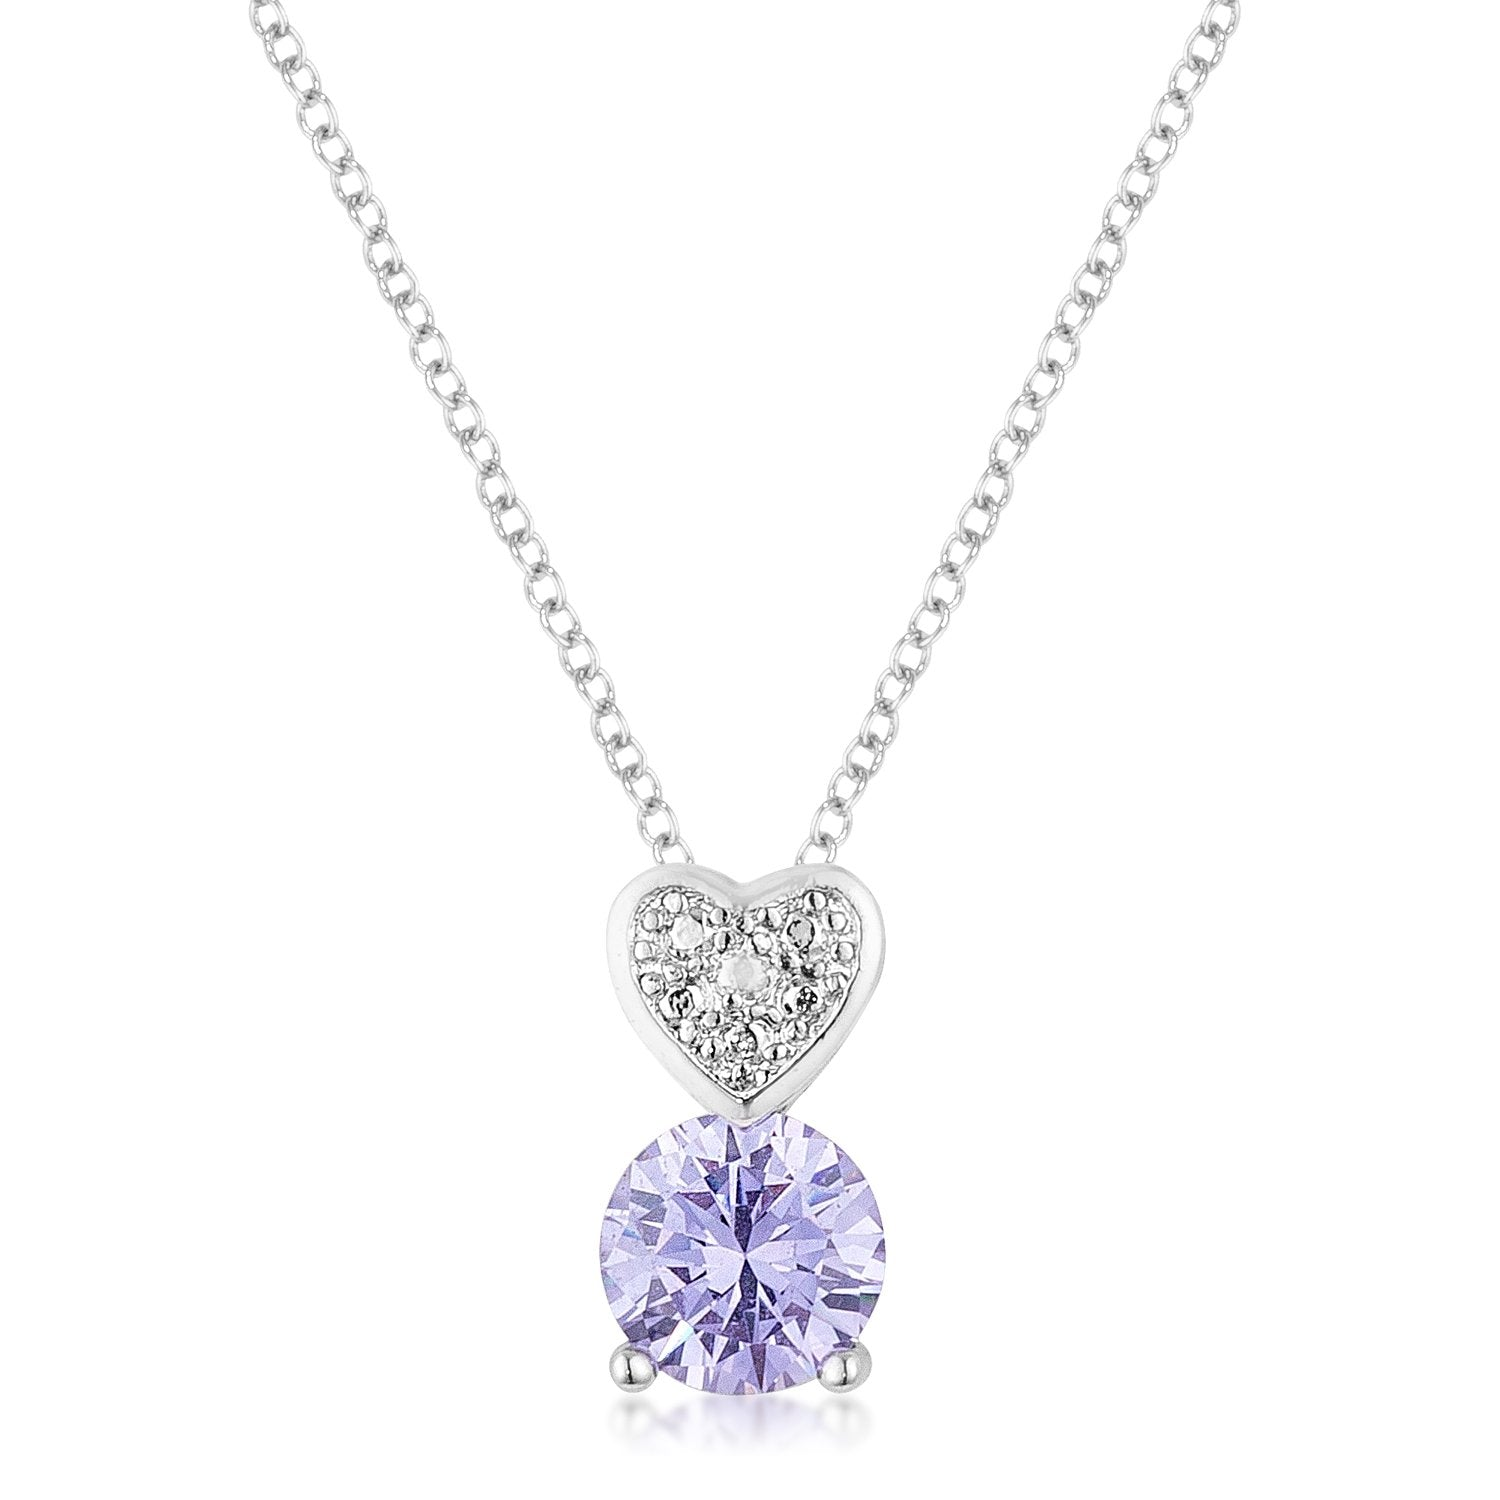 8mm Lavender Cubic Zirconia Fashion Heart Pendant - P11123R-S22